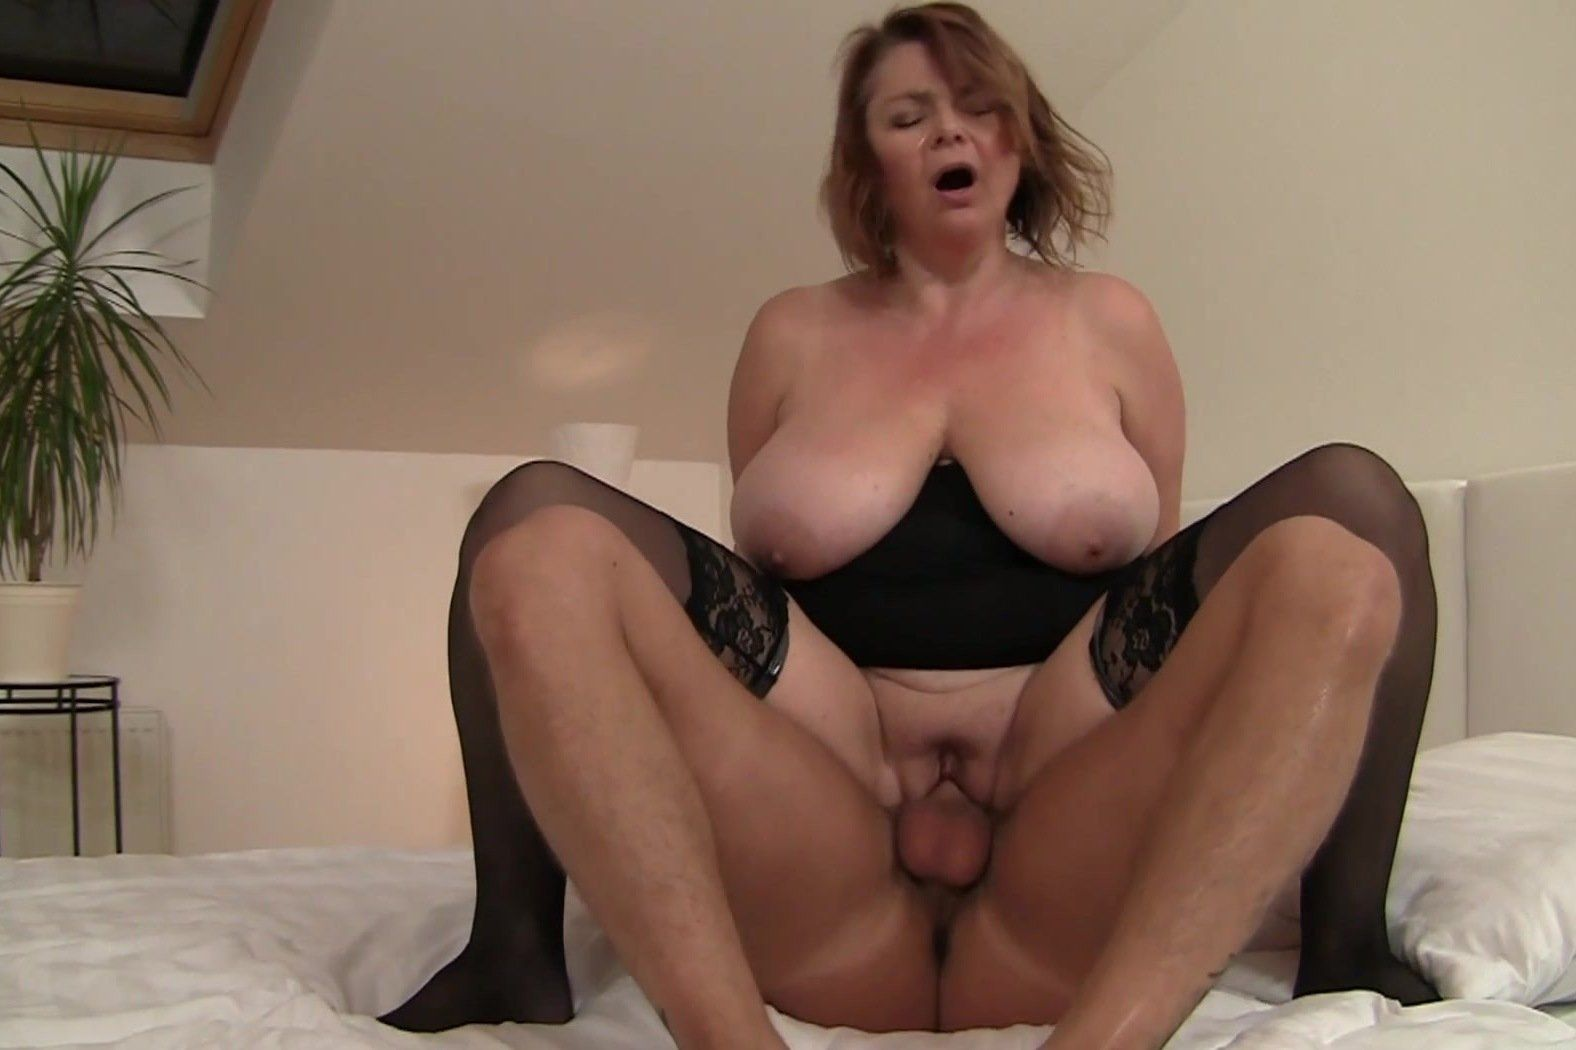 Ass shemale licked gets hole her